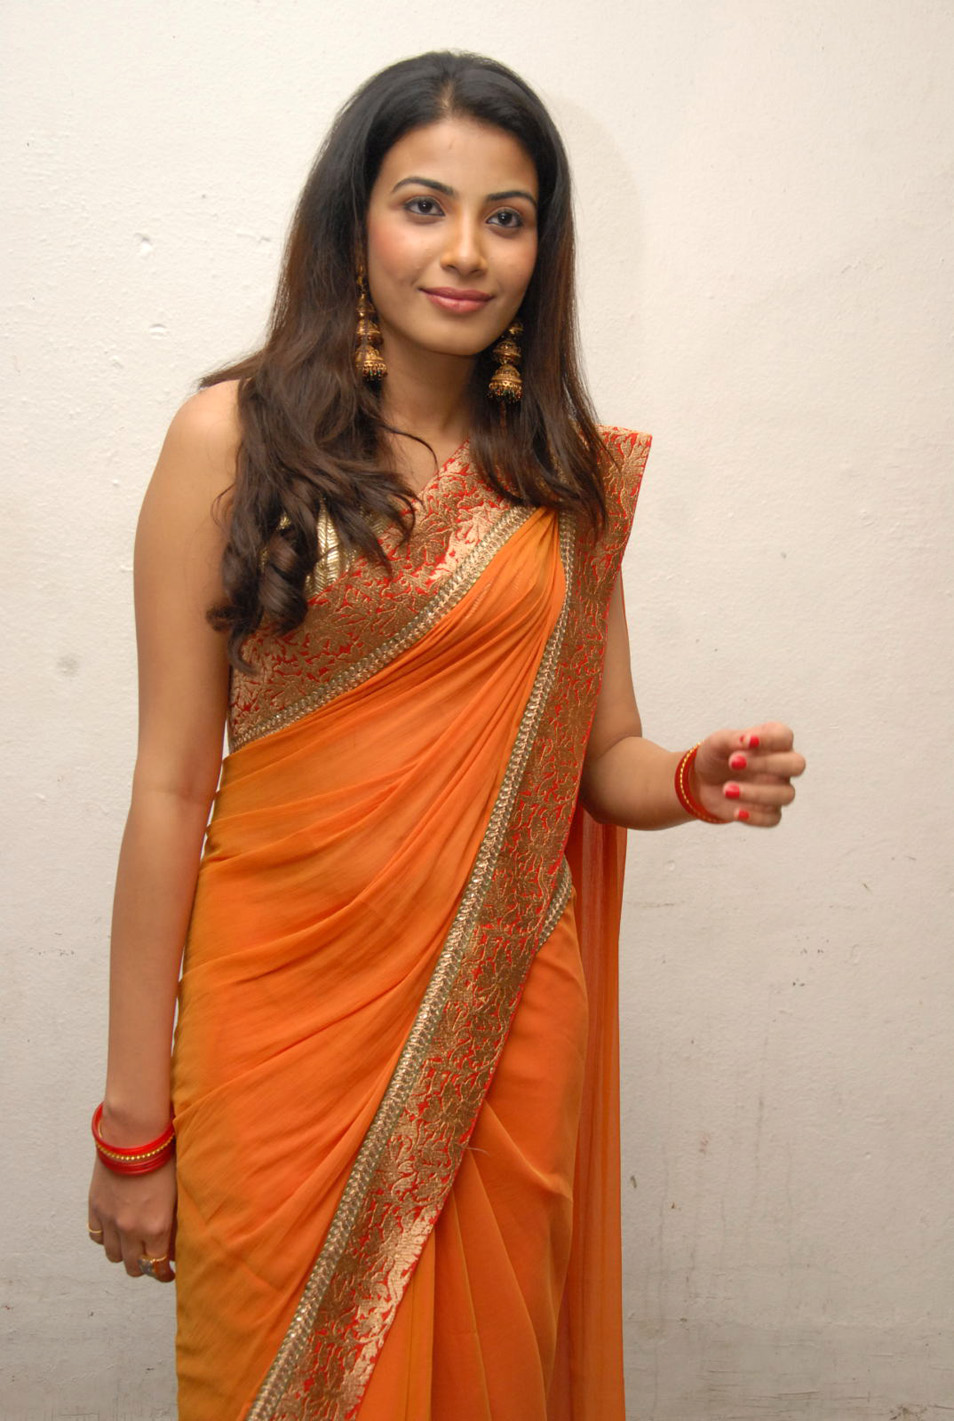 Kavya Shetty hot in saree